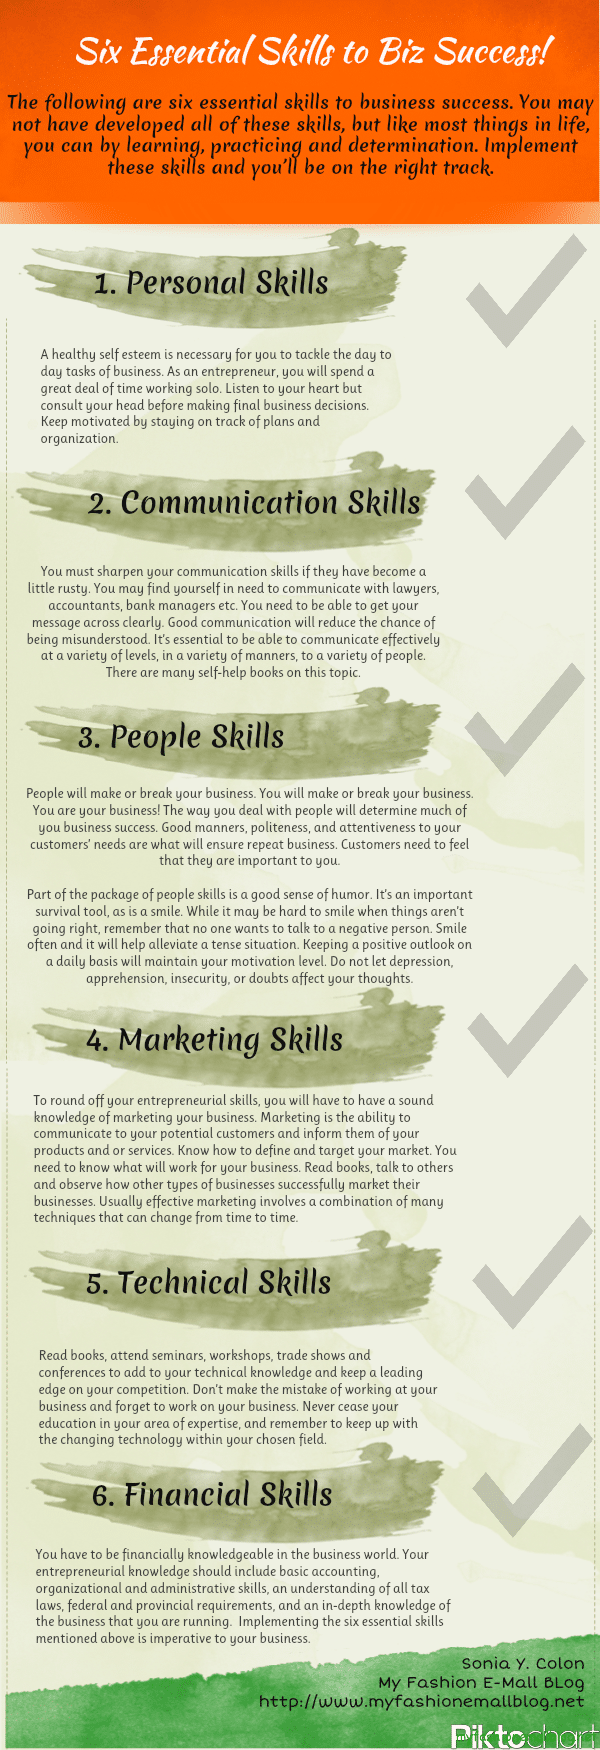 6 Essential Skills For Business Success [infographic]